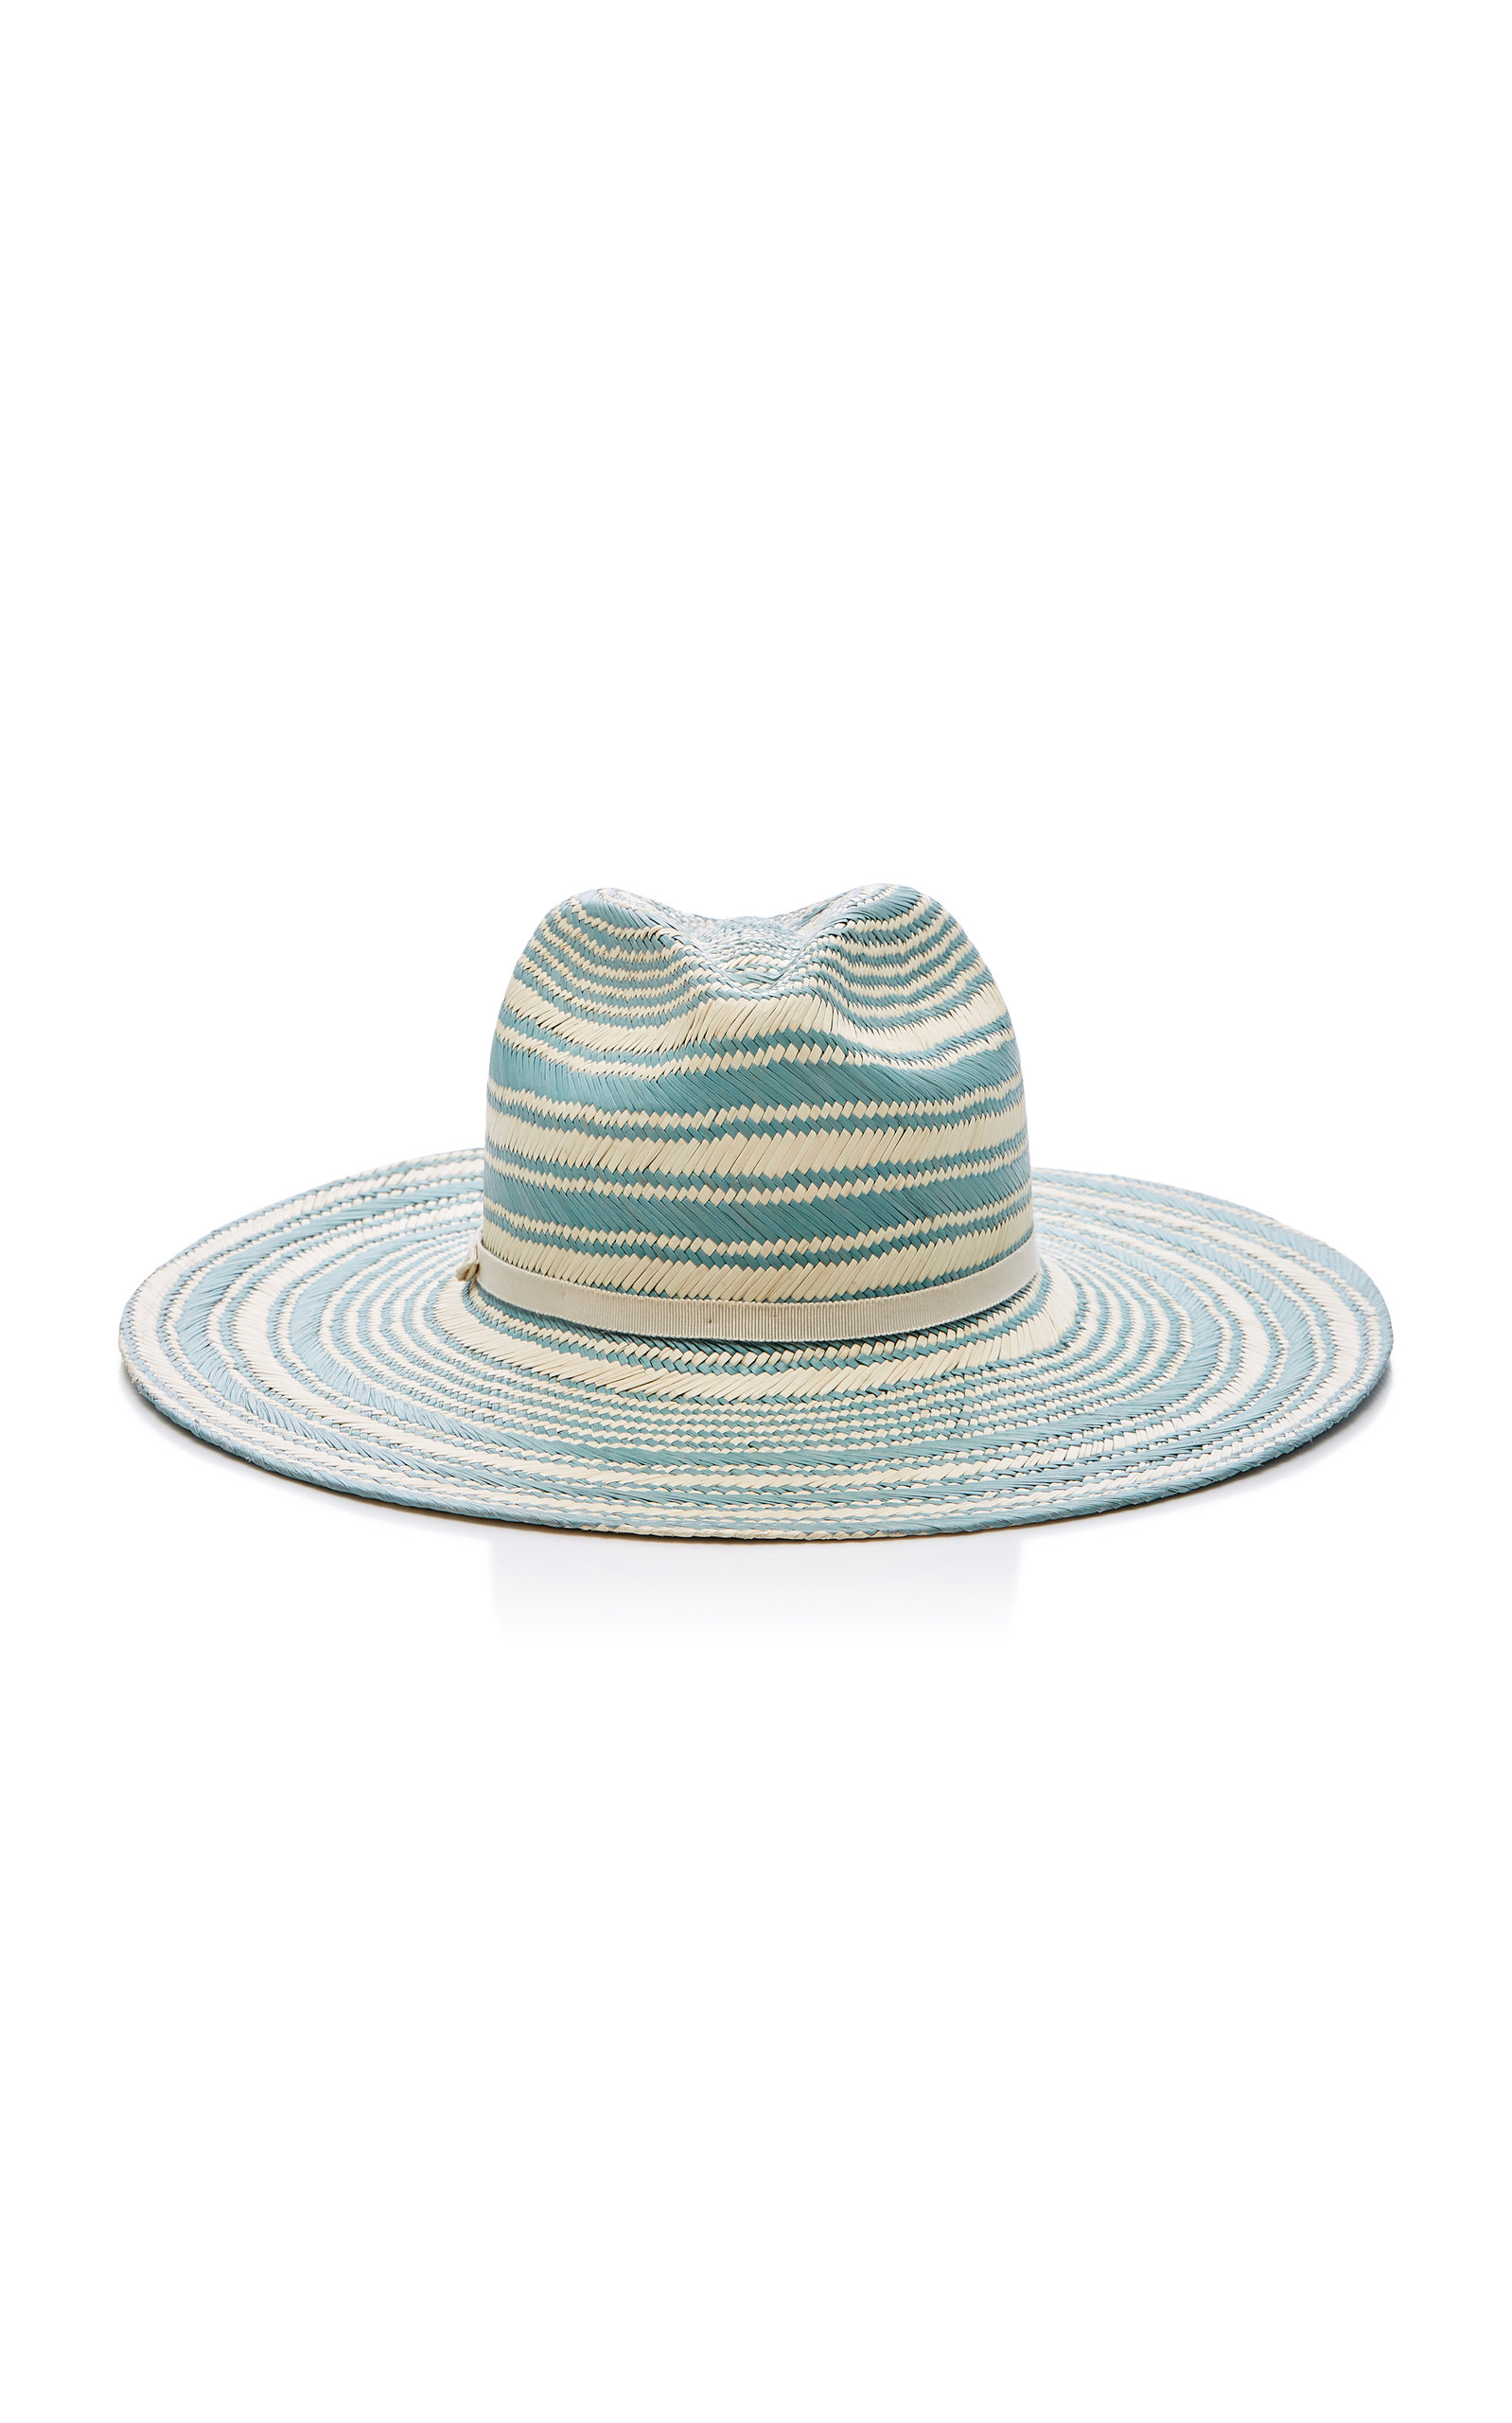 Playa Tasseled Straw Bucket Hat YESTADT MILLINERY Ji3ESk9m